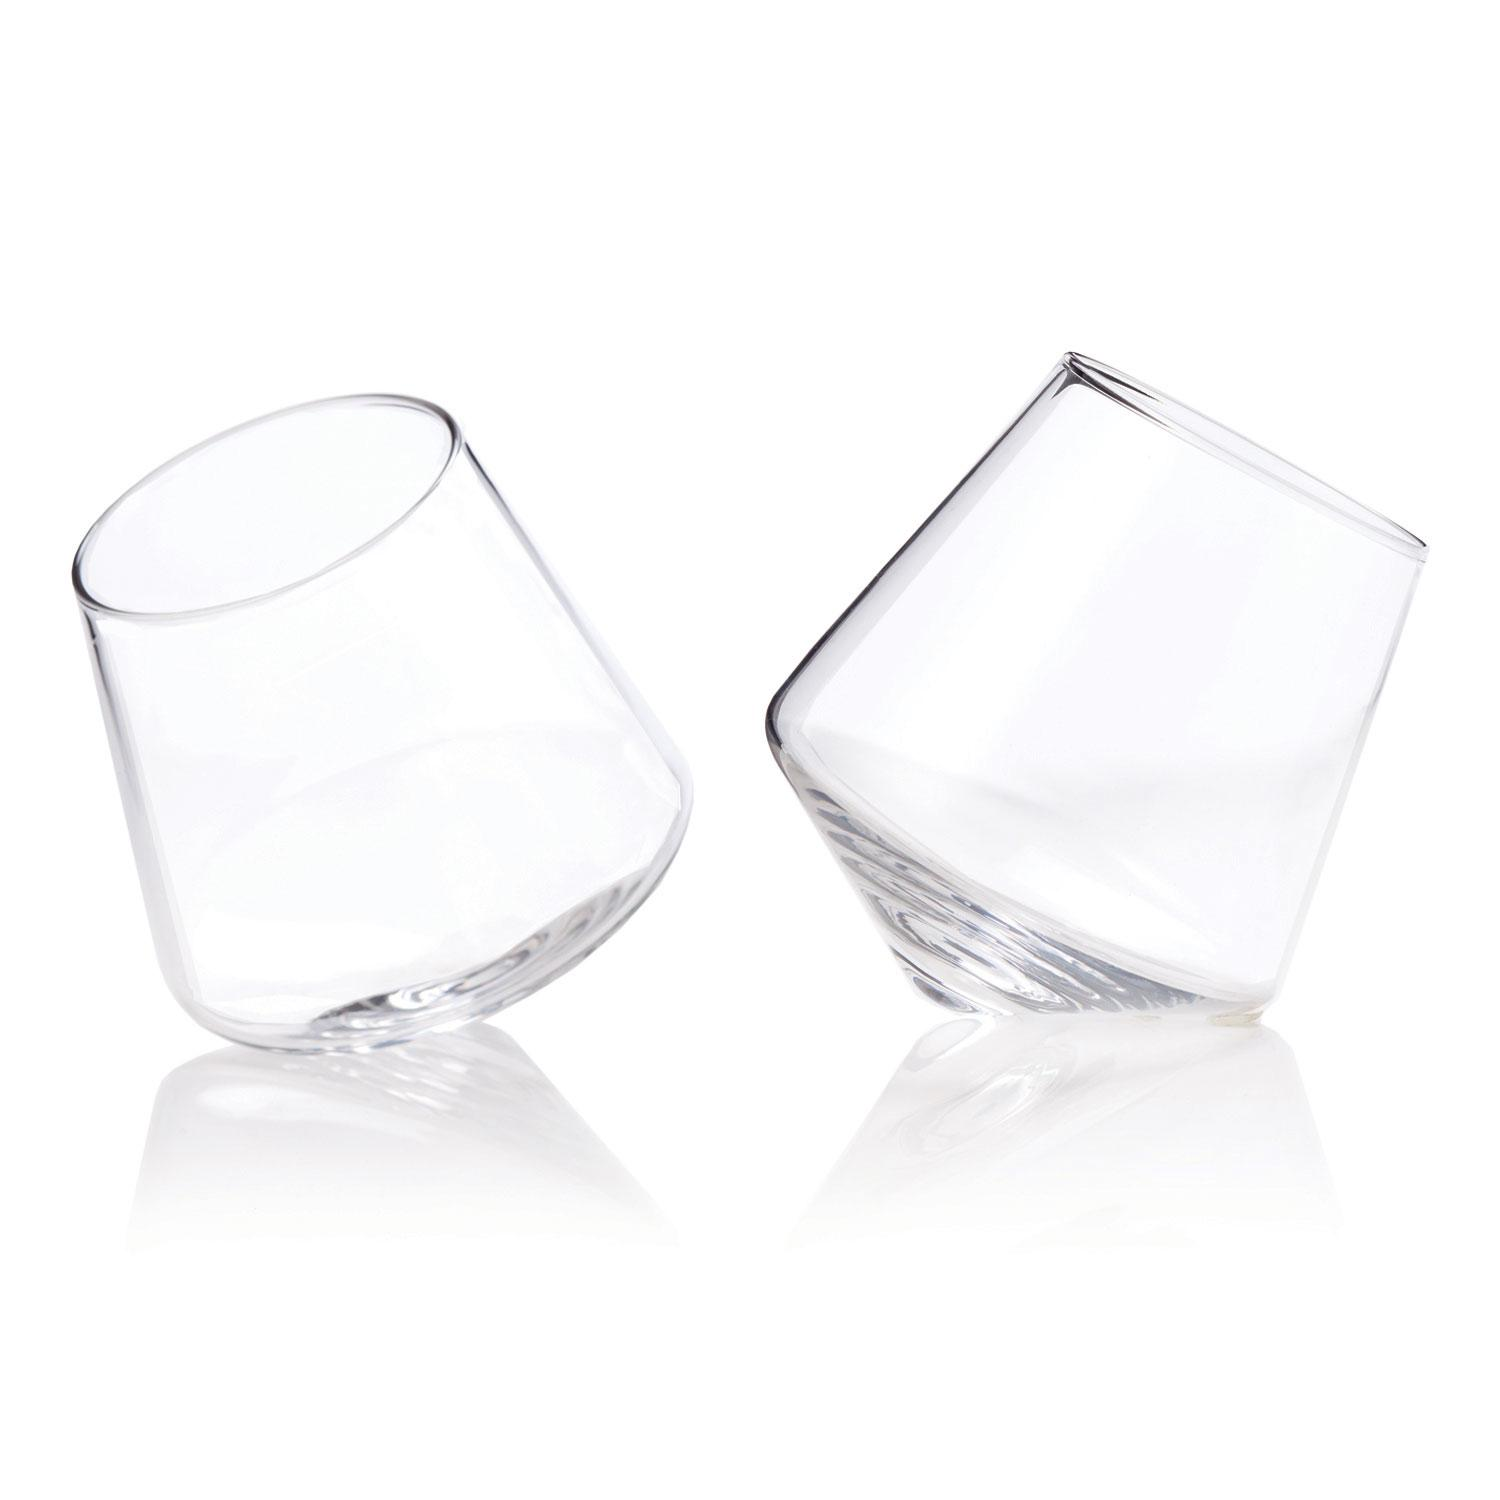 Uberstar Rolling Glasses - Only £14.99 (Pair)